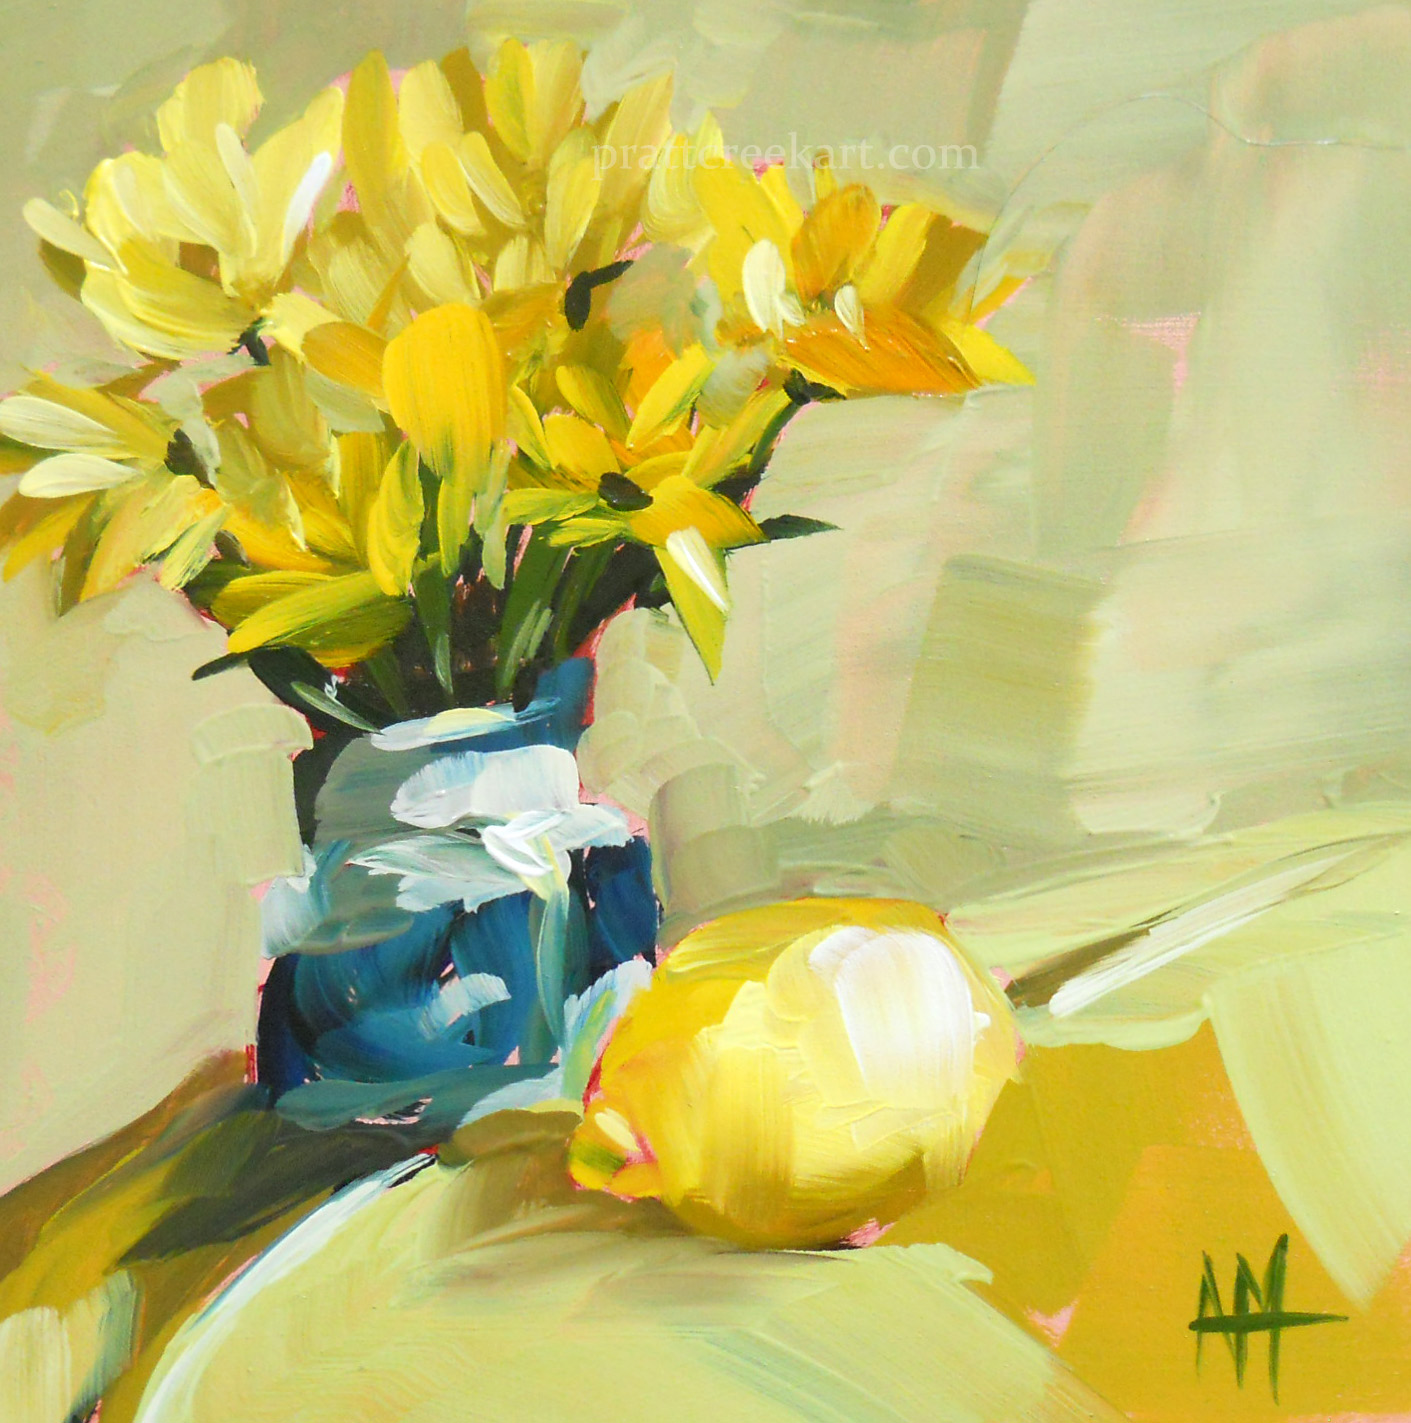 Yellow flowers in blue vase and lemon still life painting angela yellow flowers in blue vase and lemon still life painting mightylinksfo